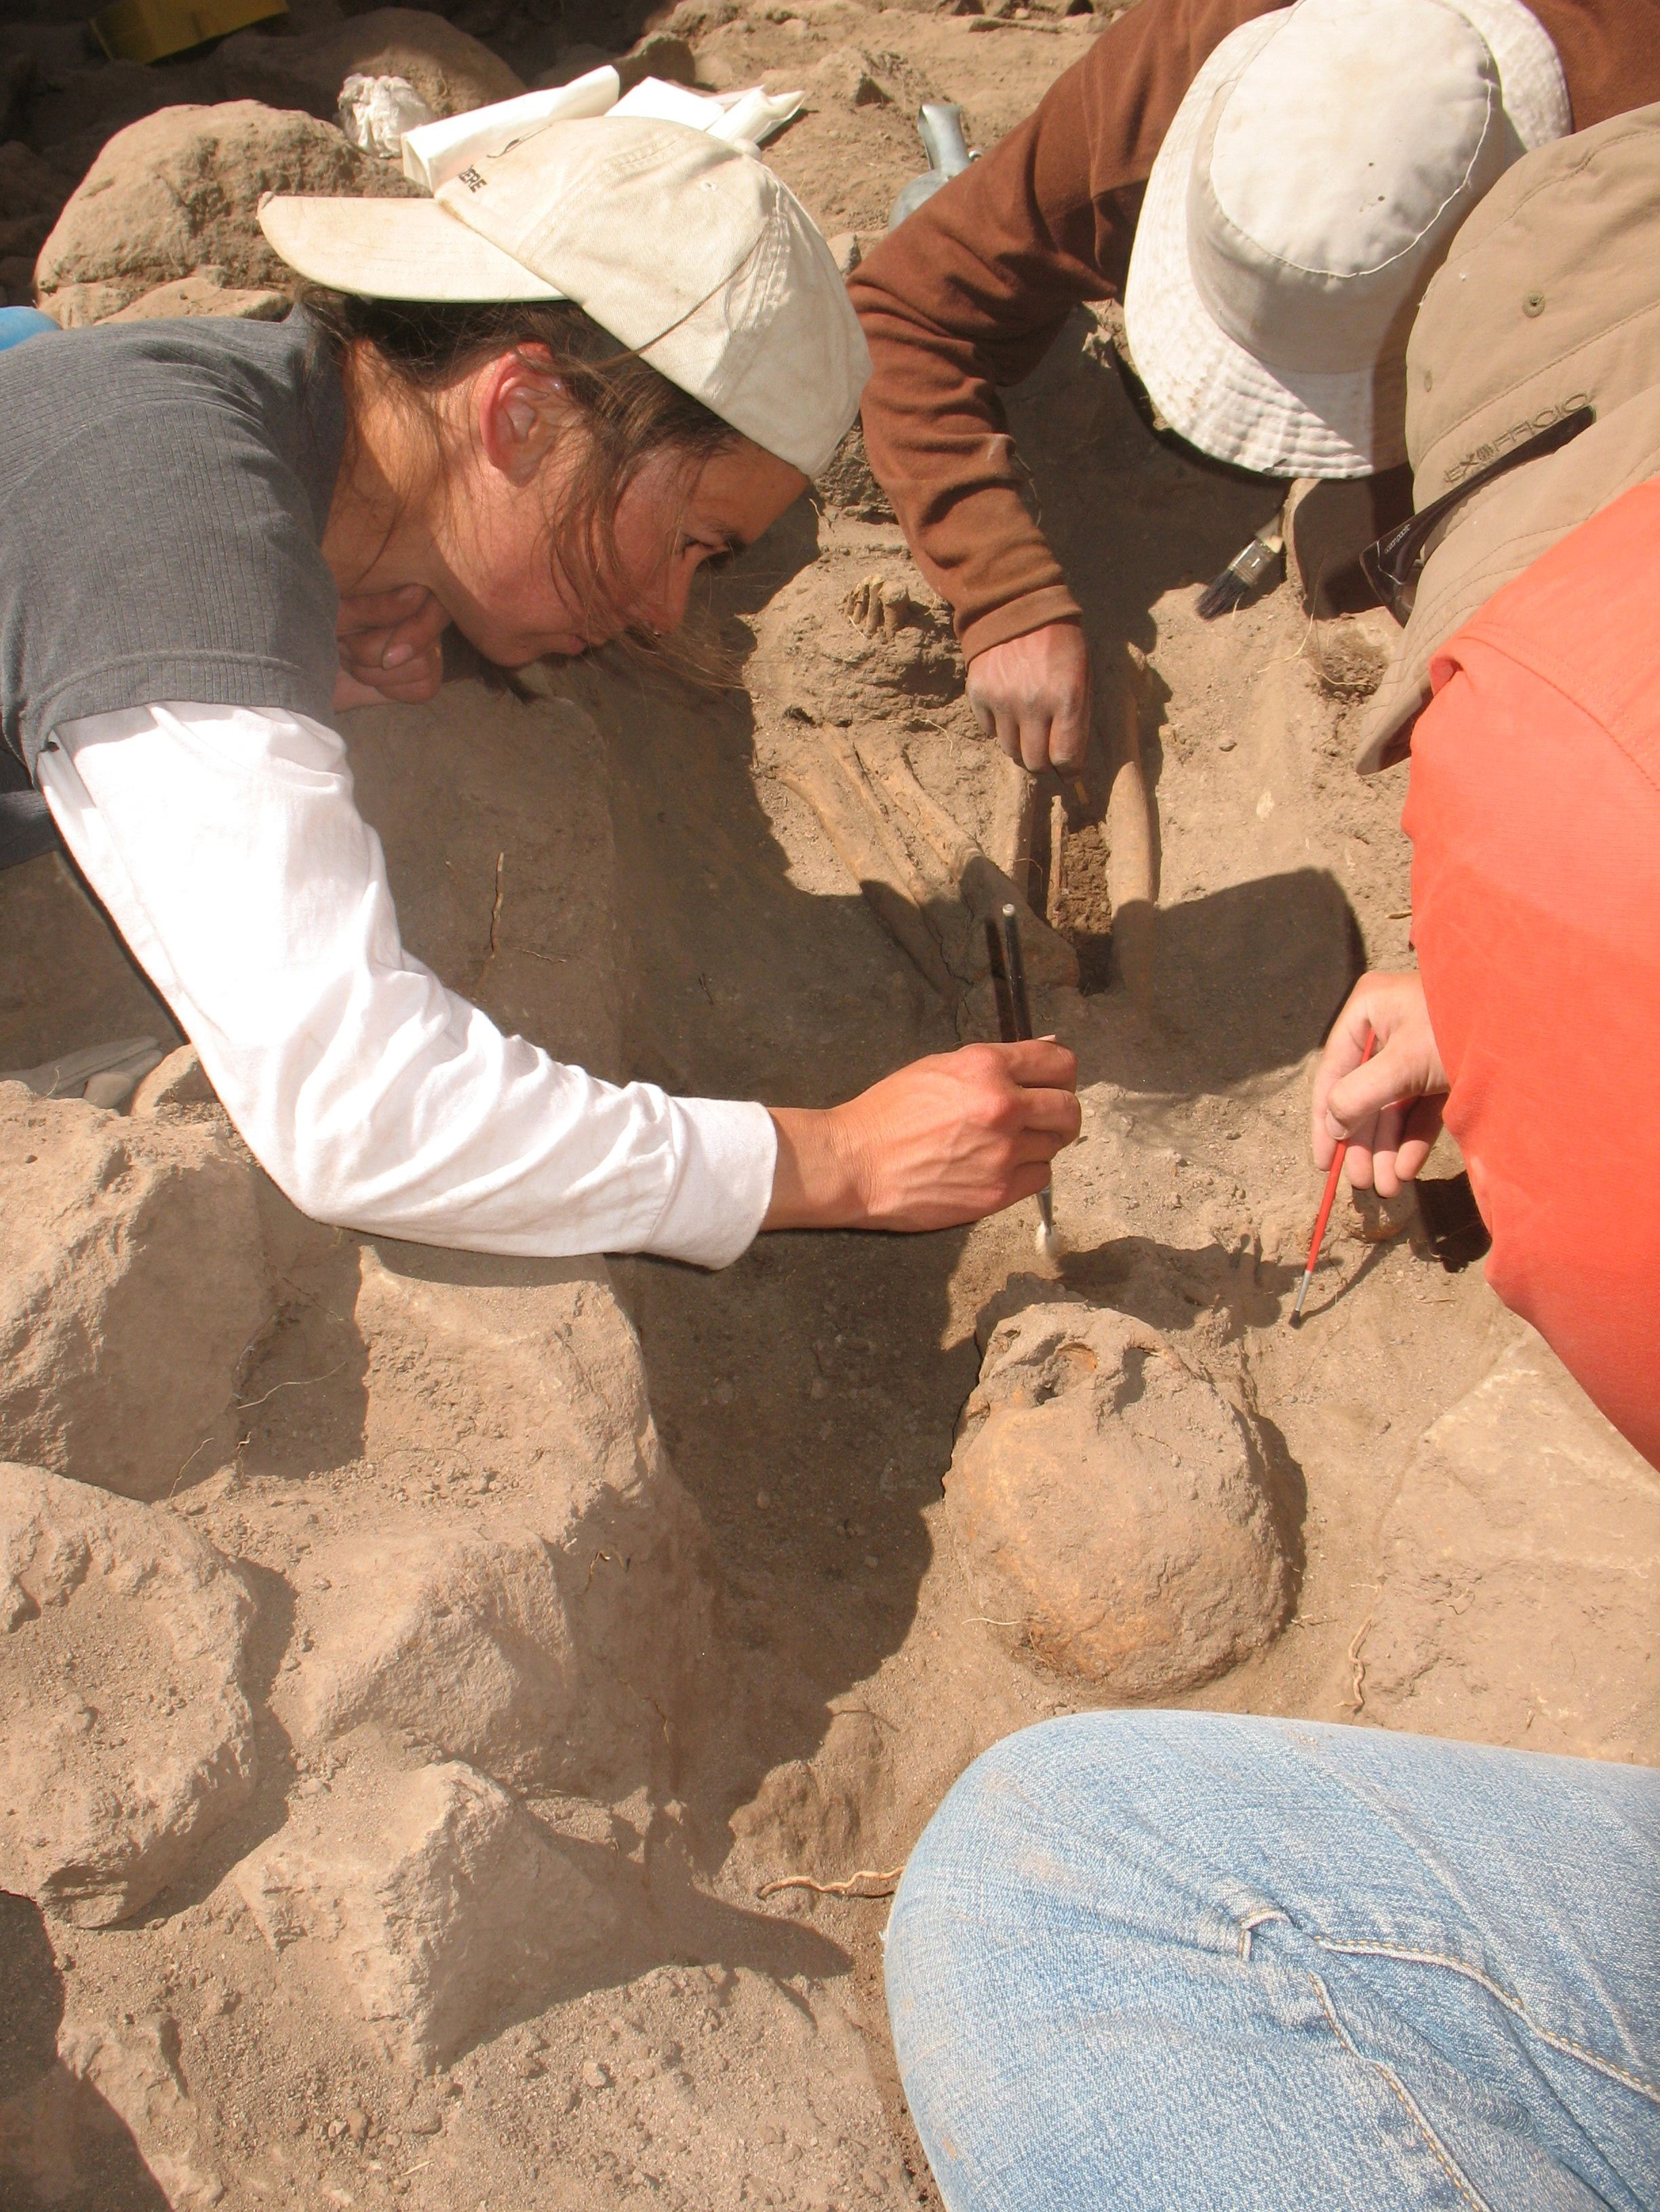 Tiffiny tung with two other researchers are using brushes on a skeleton covered in dirt and surrounded by rocks.